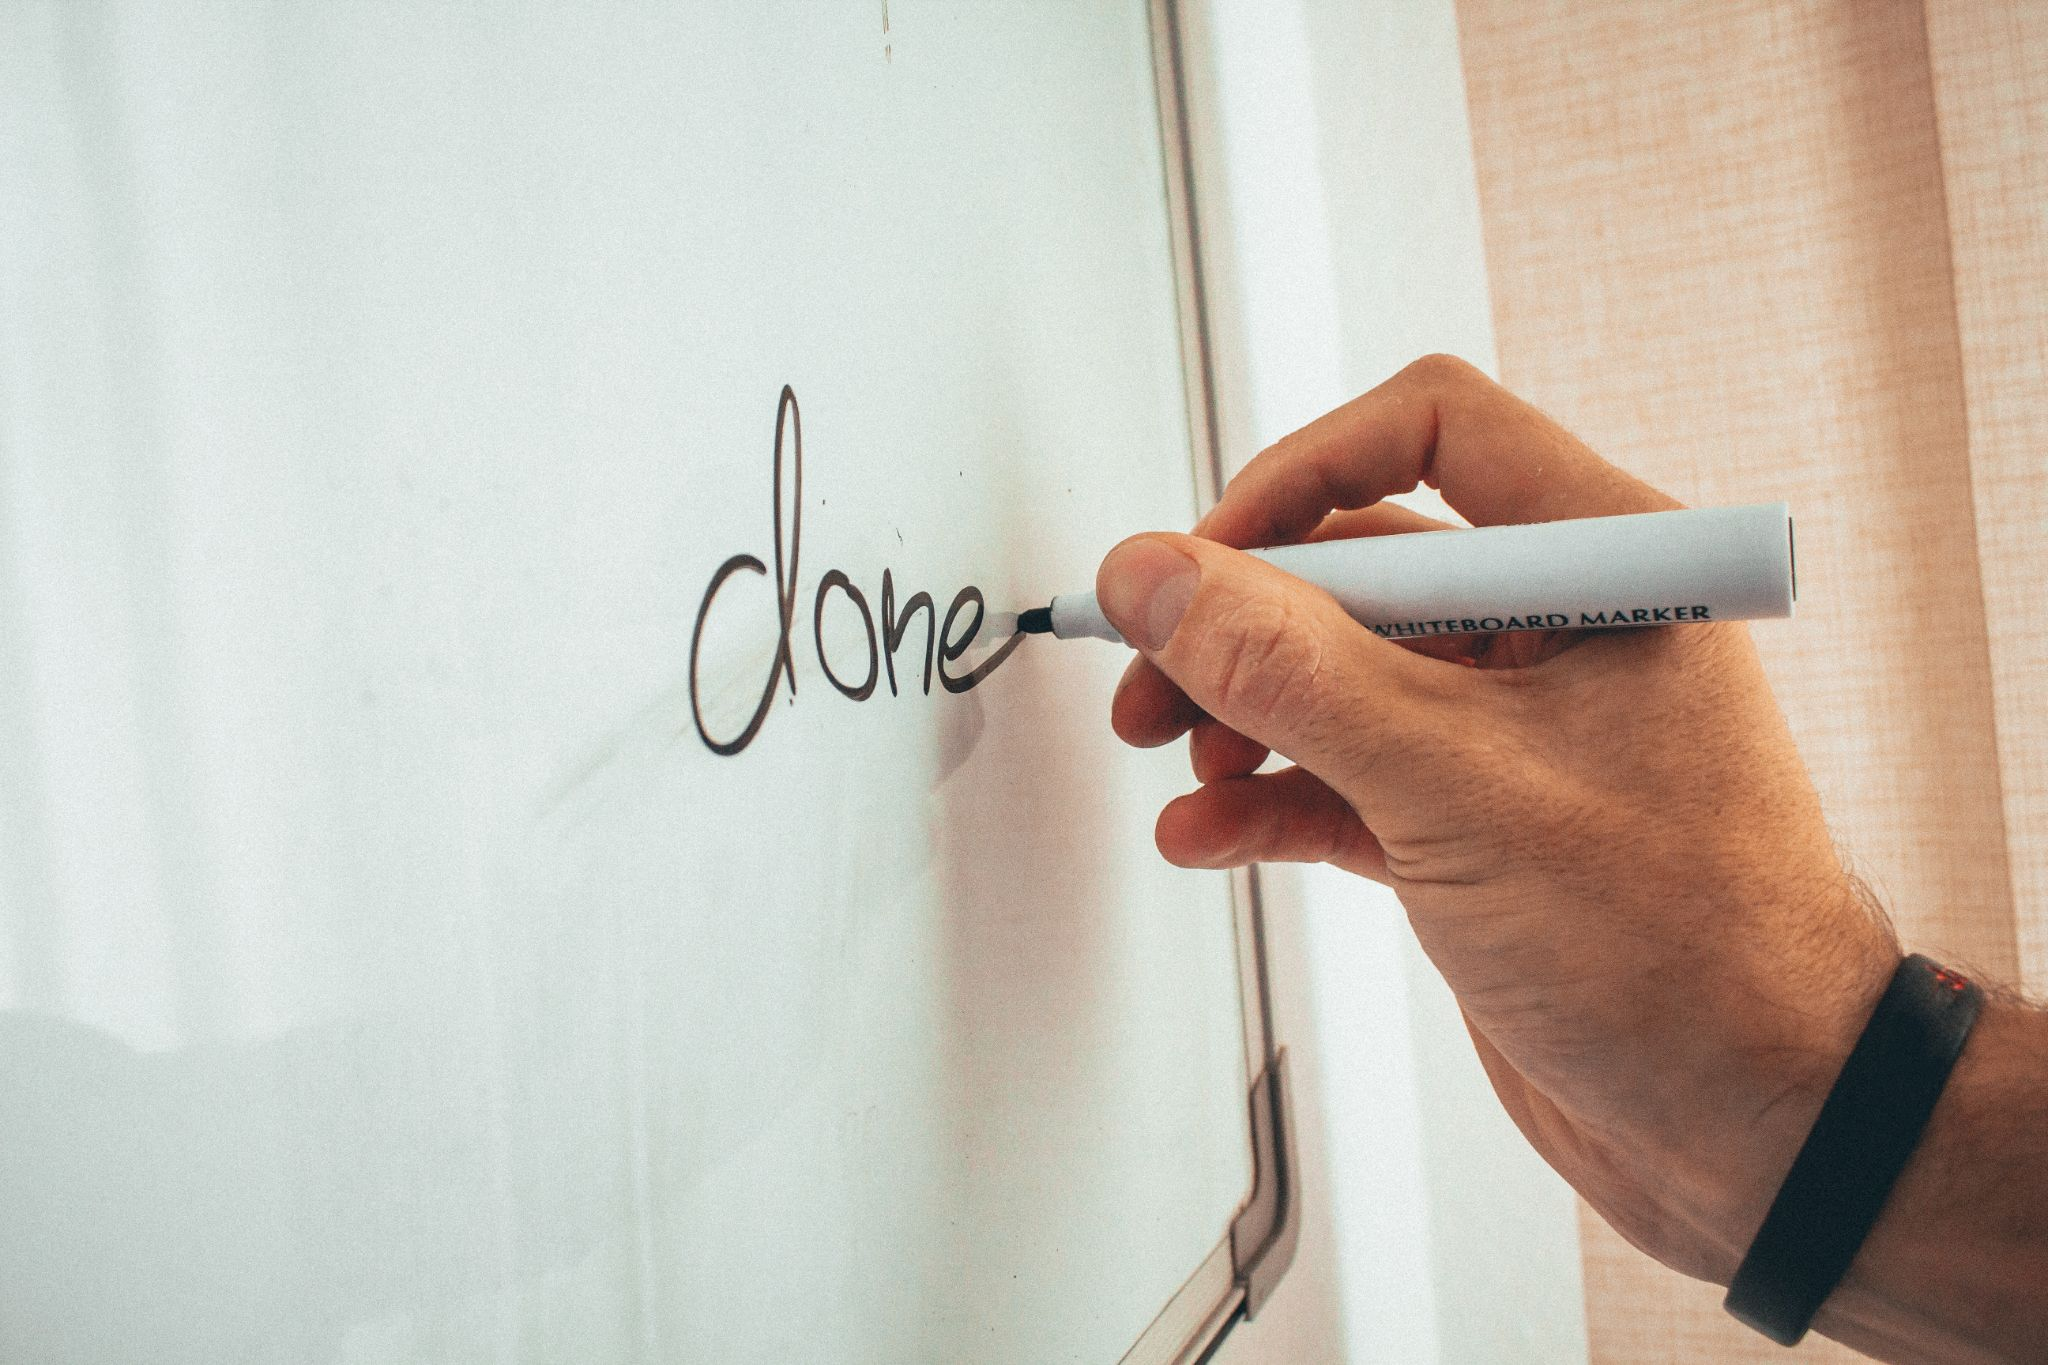 a hand writing the word 'done' on a whiteboard.